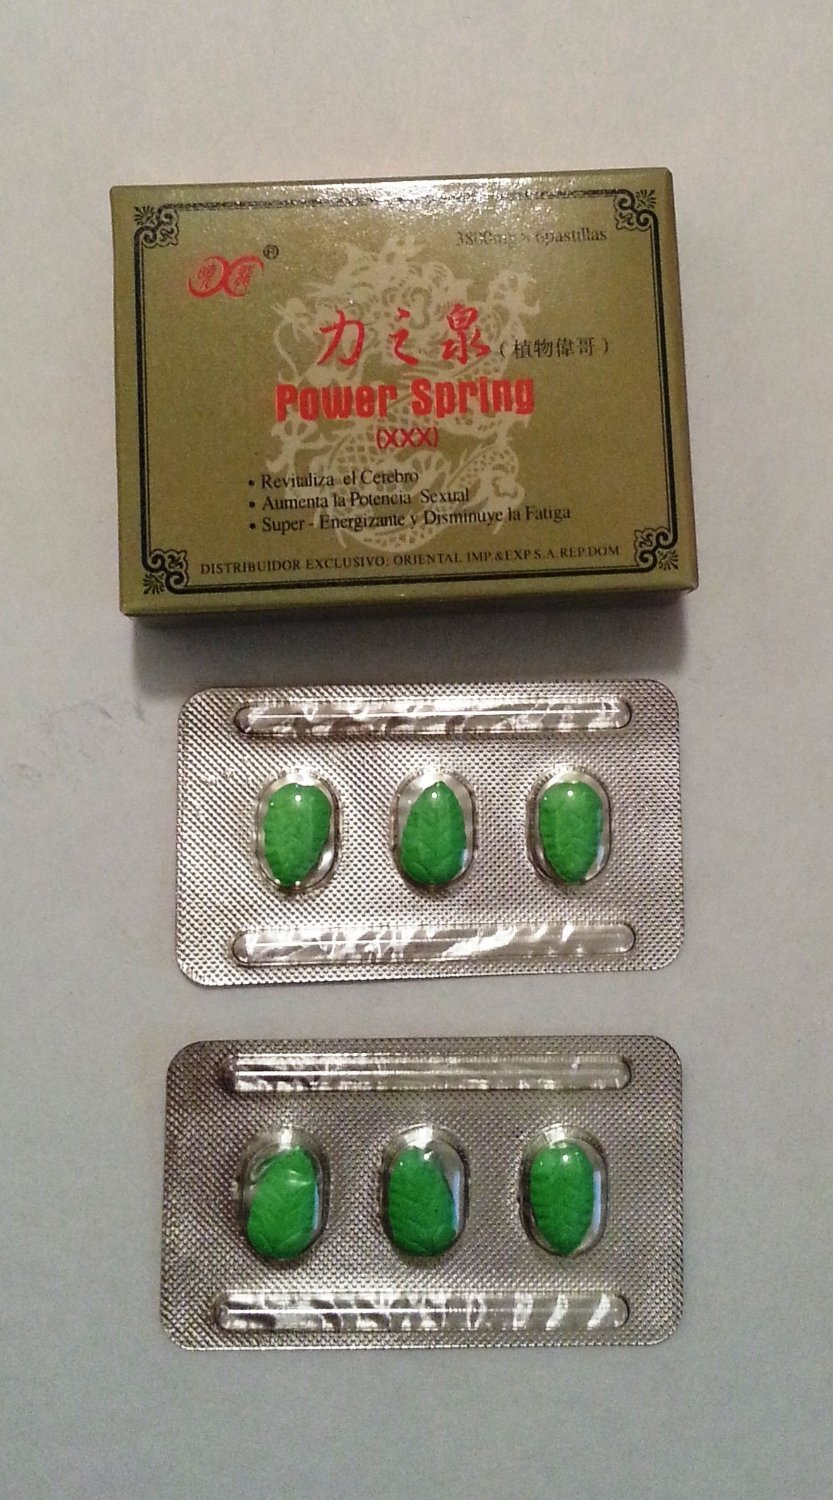 Amazon.com: Chinese Power Spring XXX Natural Herbal (Ginseng + Ganoderma) Sexual  Enhancement Capsules: Health & Personal Care